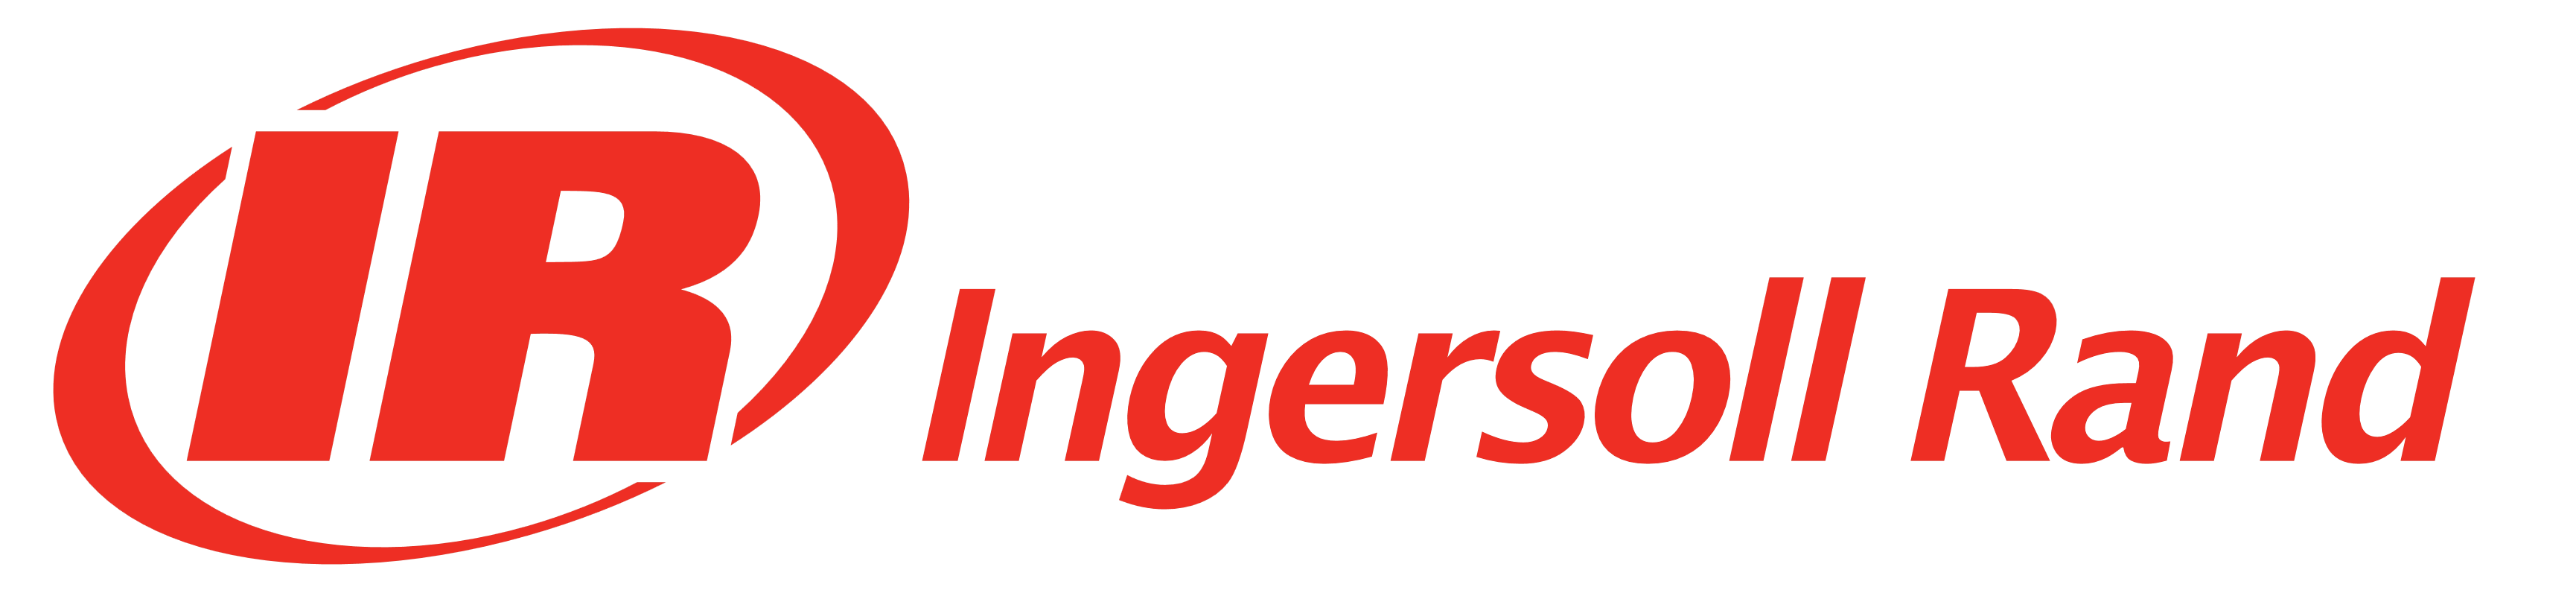 Ingersoll Rand Logos Download